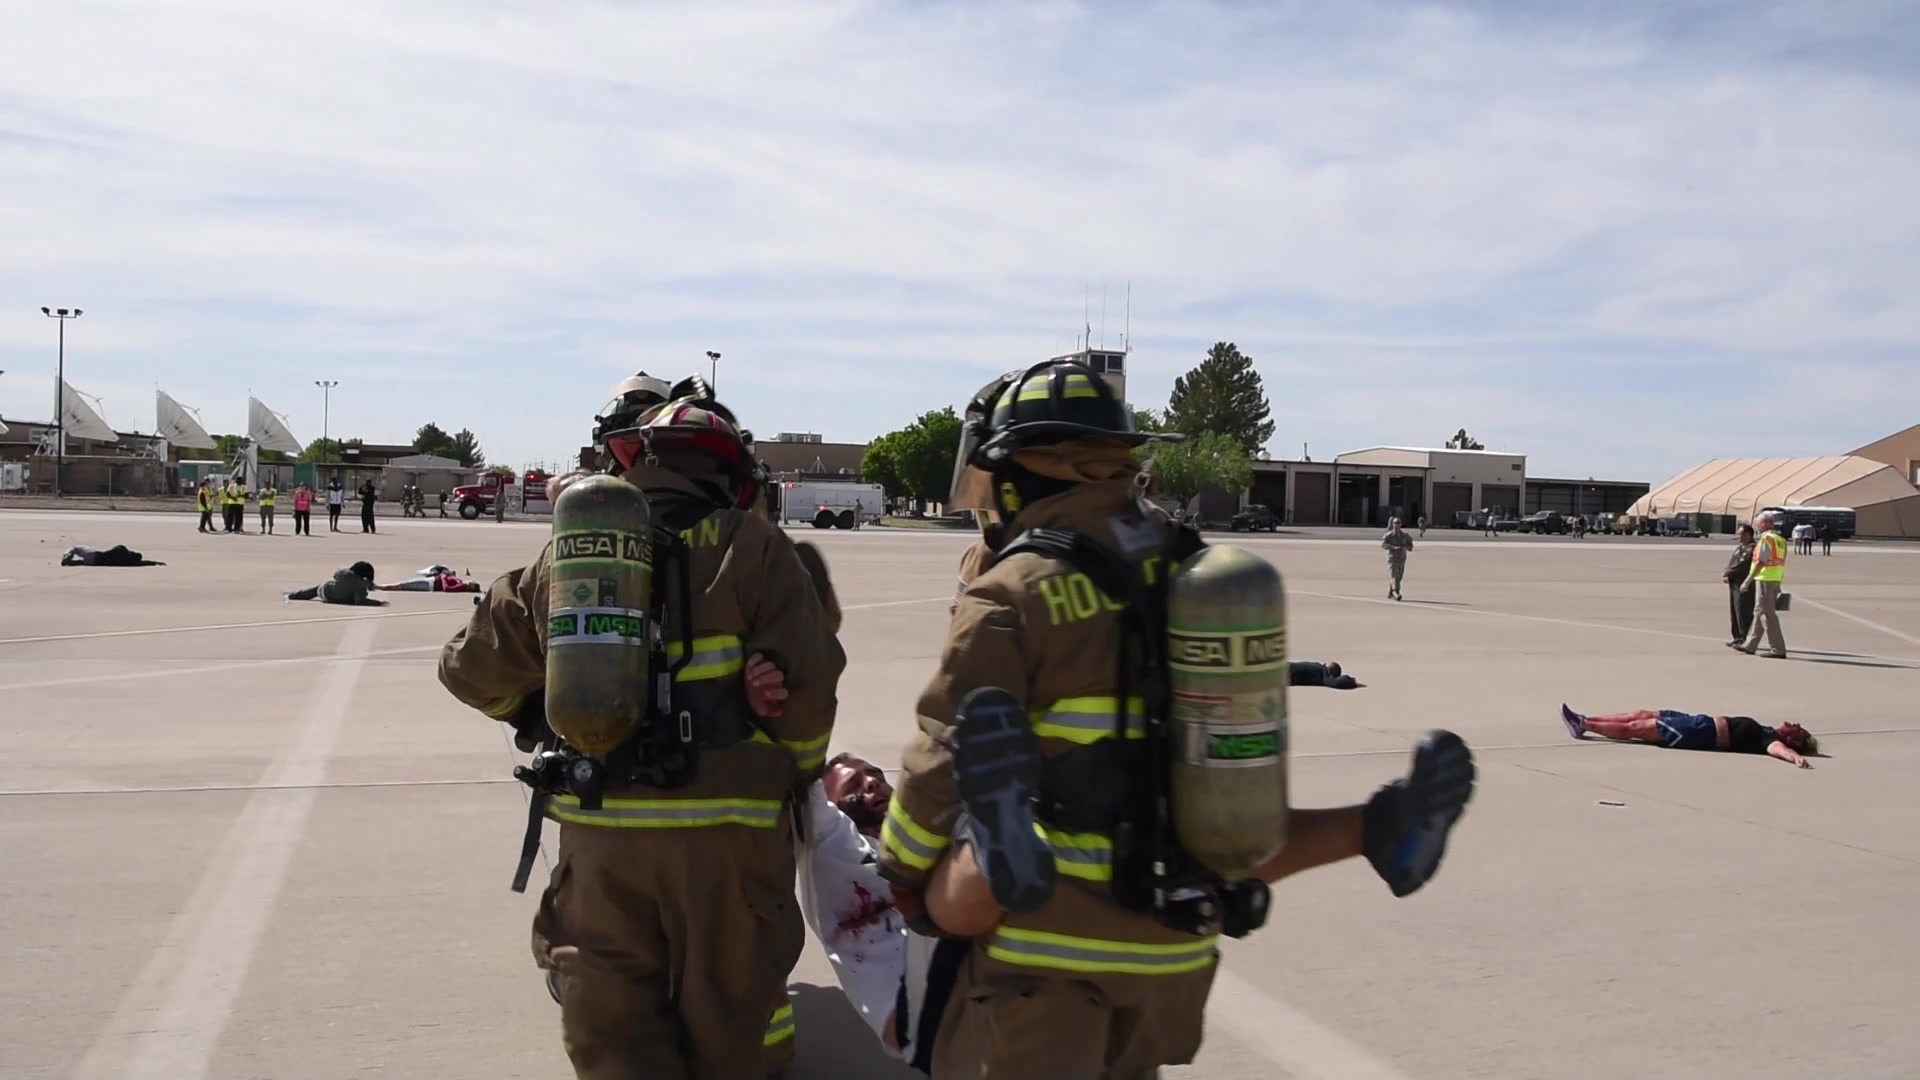 As Airmen we are ready anytime, anyplace. Airmen at Holloman Air Force Base recently tested their readiness during a Major Accident Response Exercise. This is the largest exercise since 2014, and featured first responders from the local community.